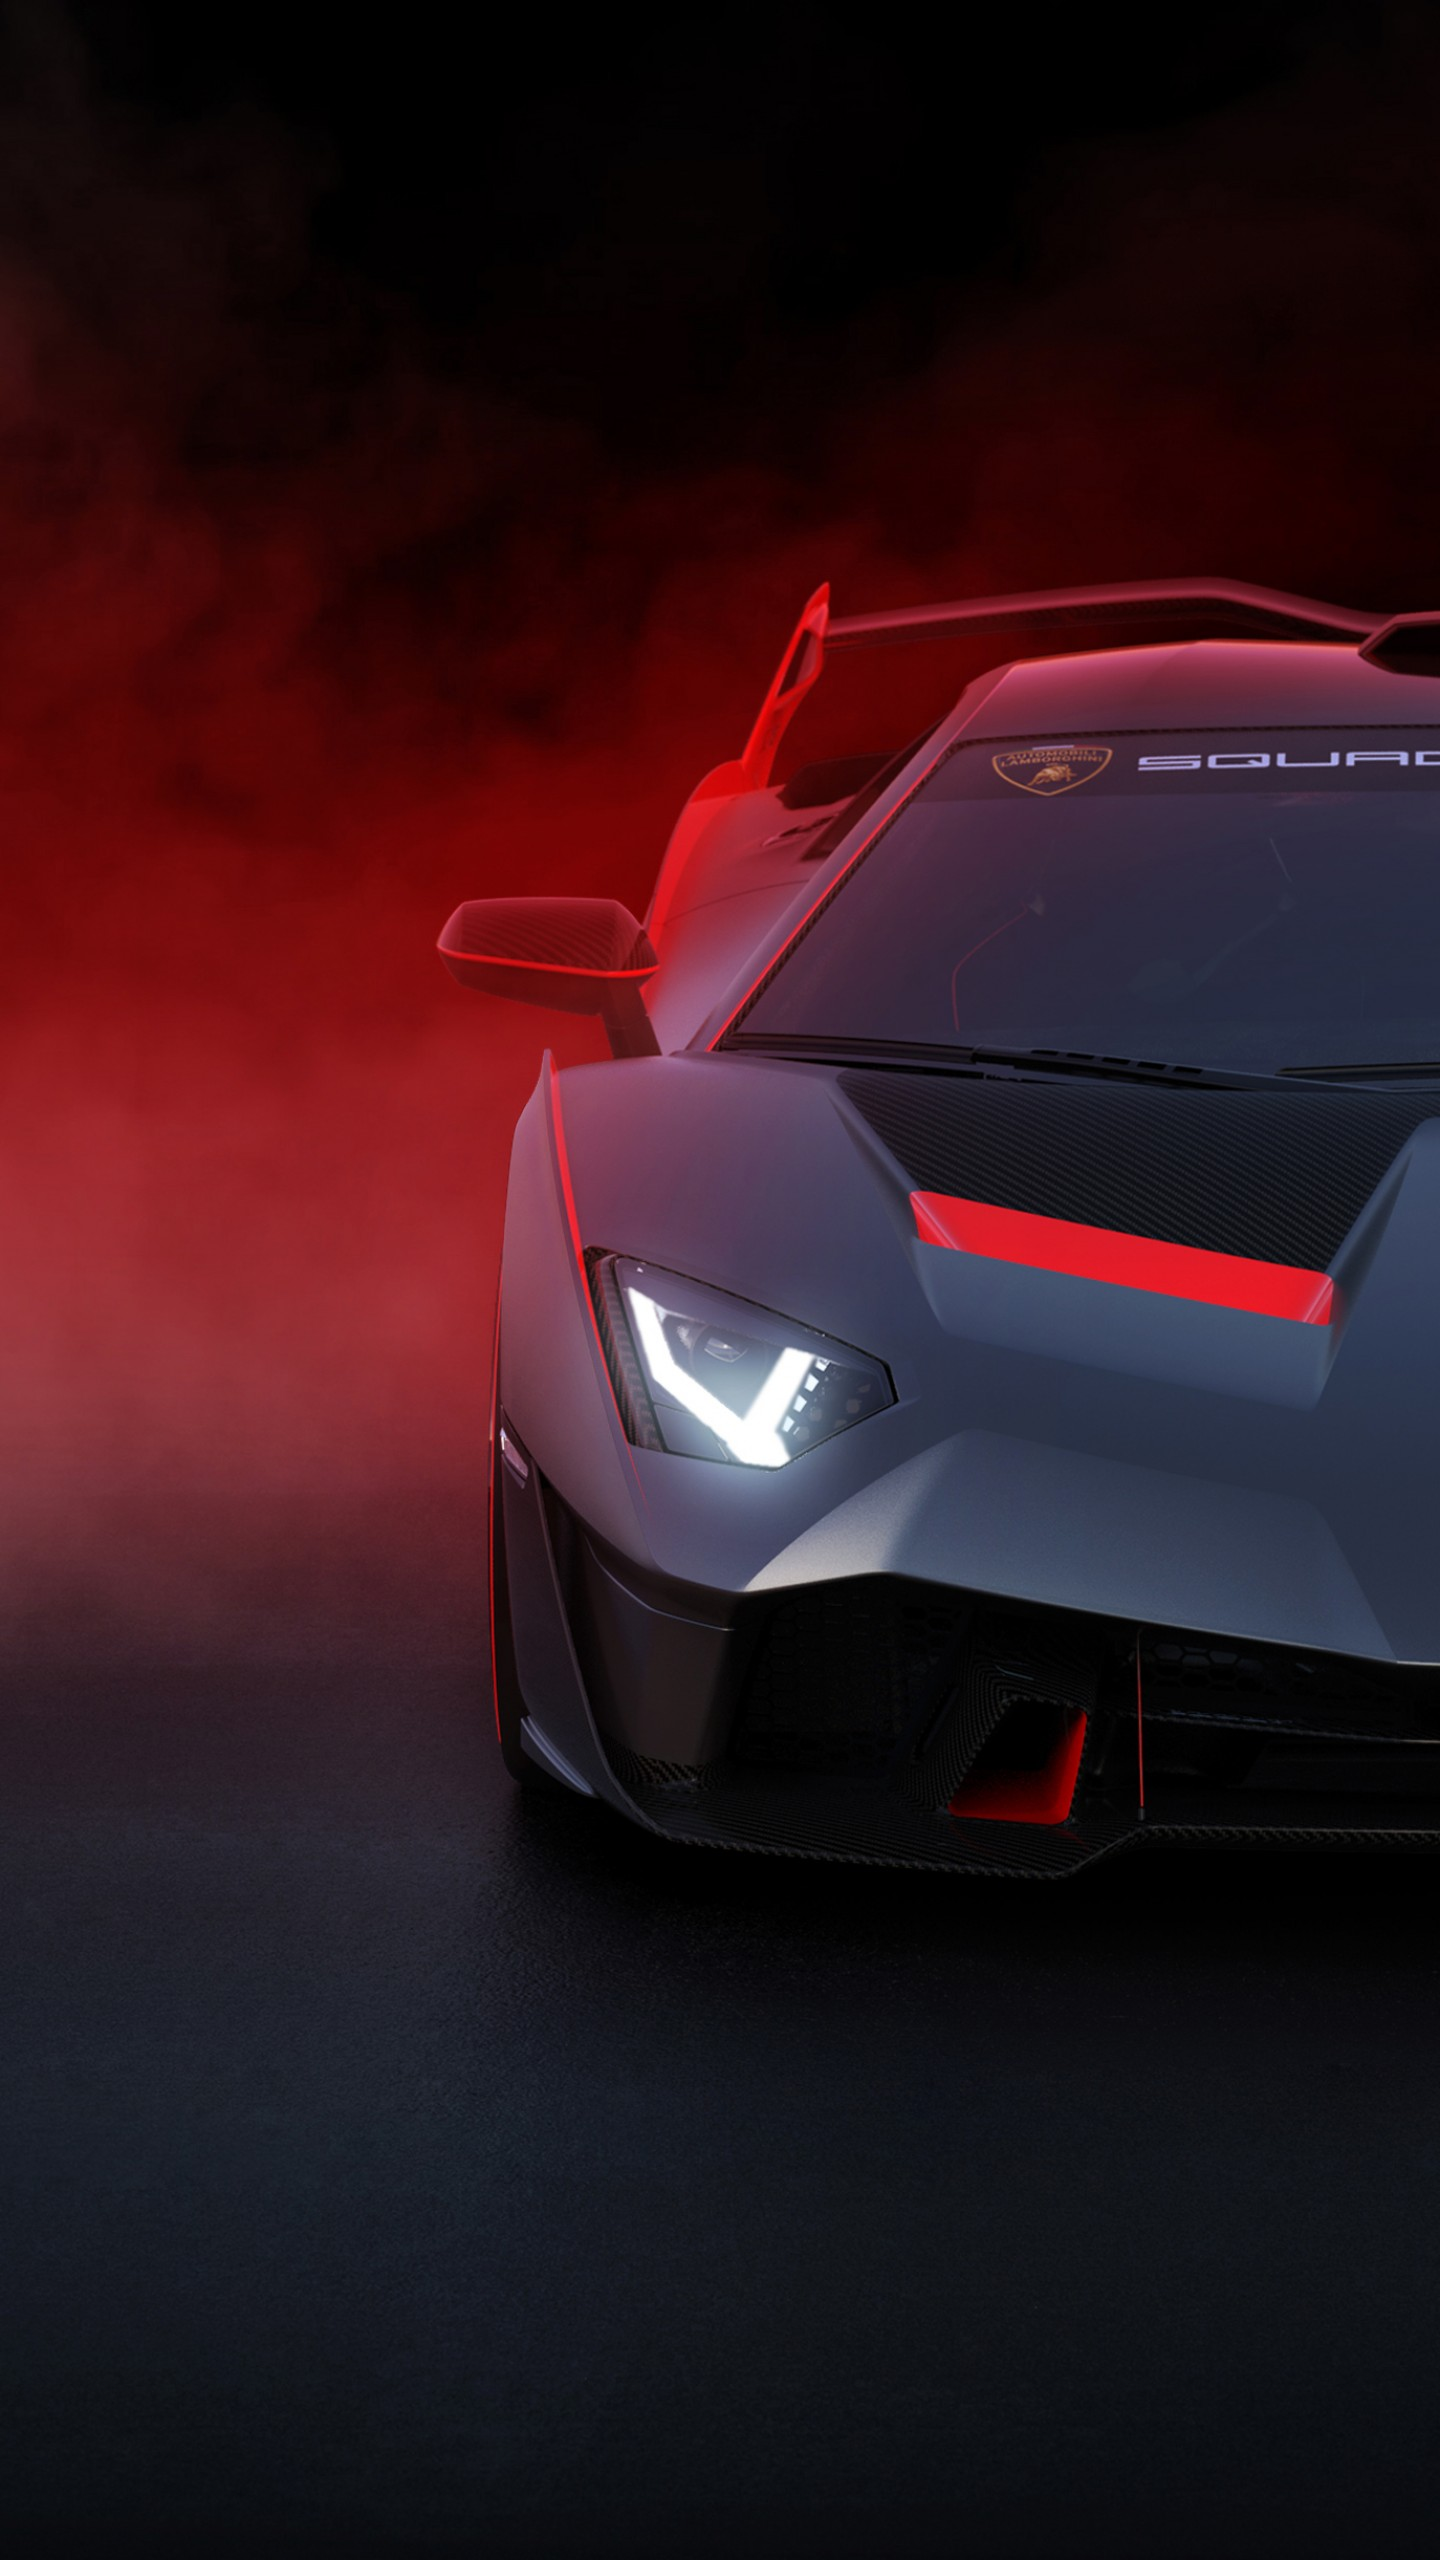 Wallpapers Cars 4k 1920x1080 Wallpaper Lamborghini Sc Cars 4k Cars